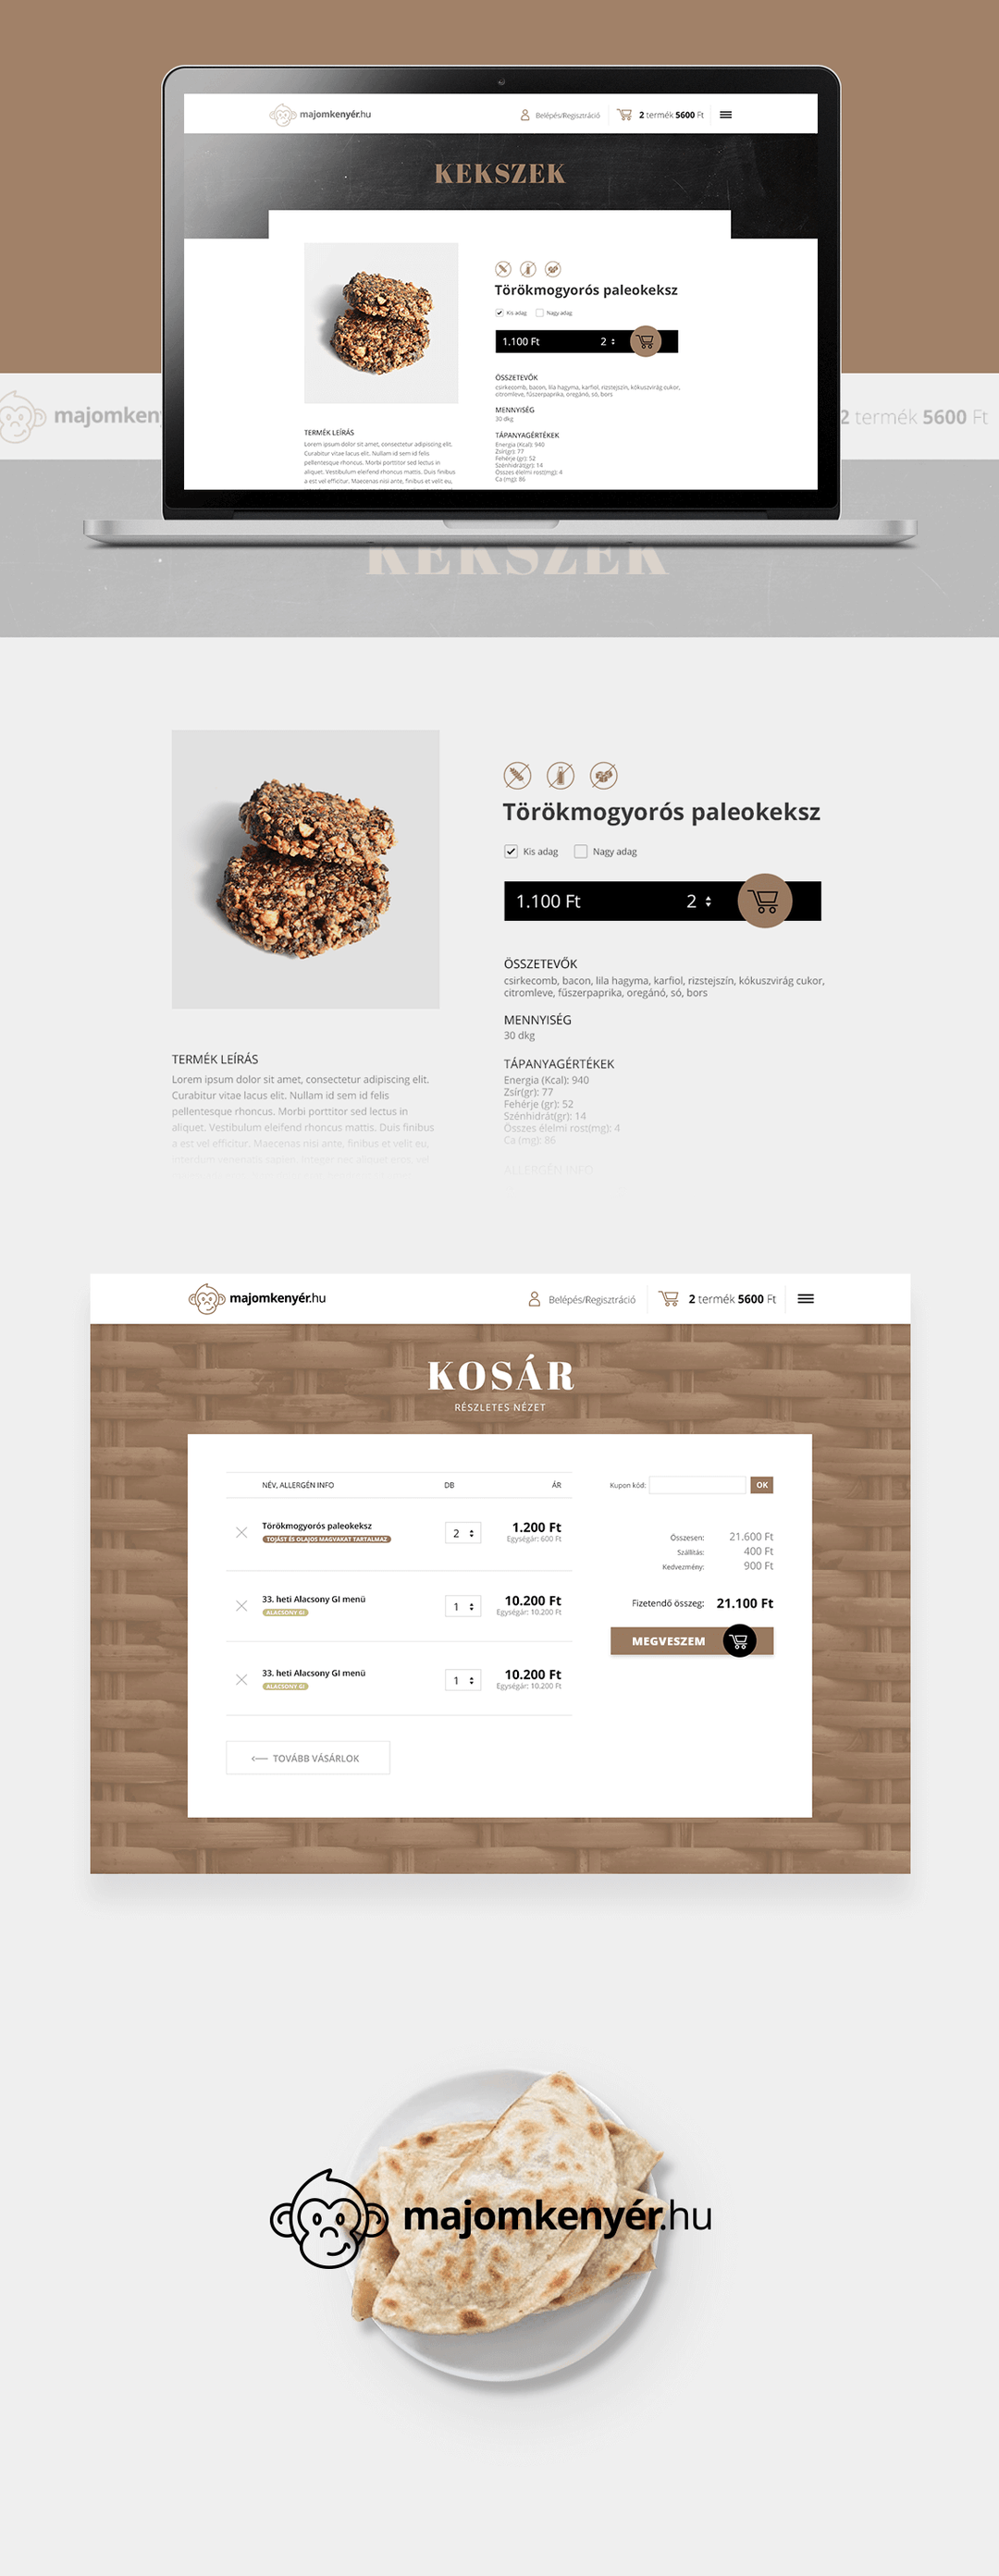 Majomkenyer branding and website design by Finsweet